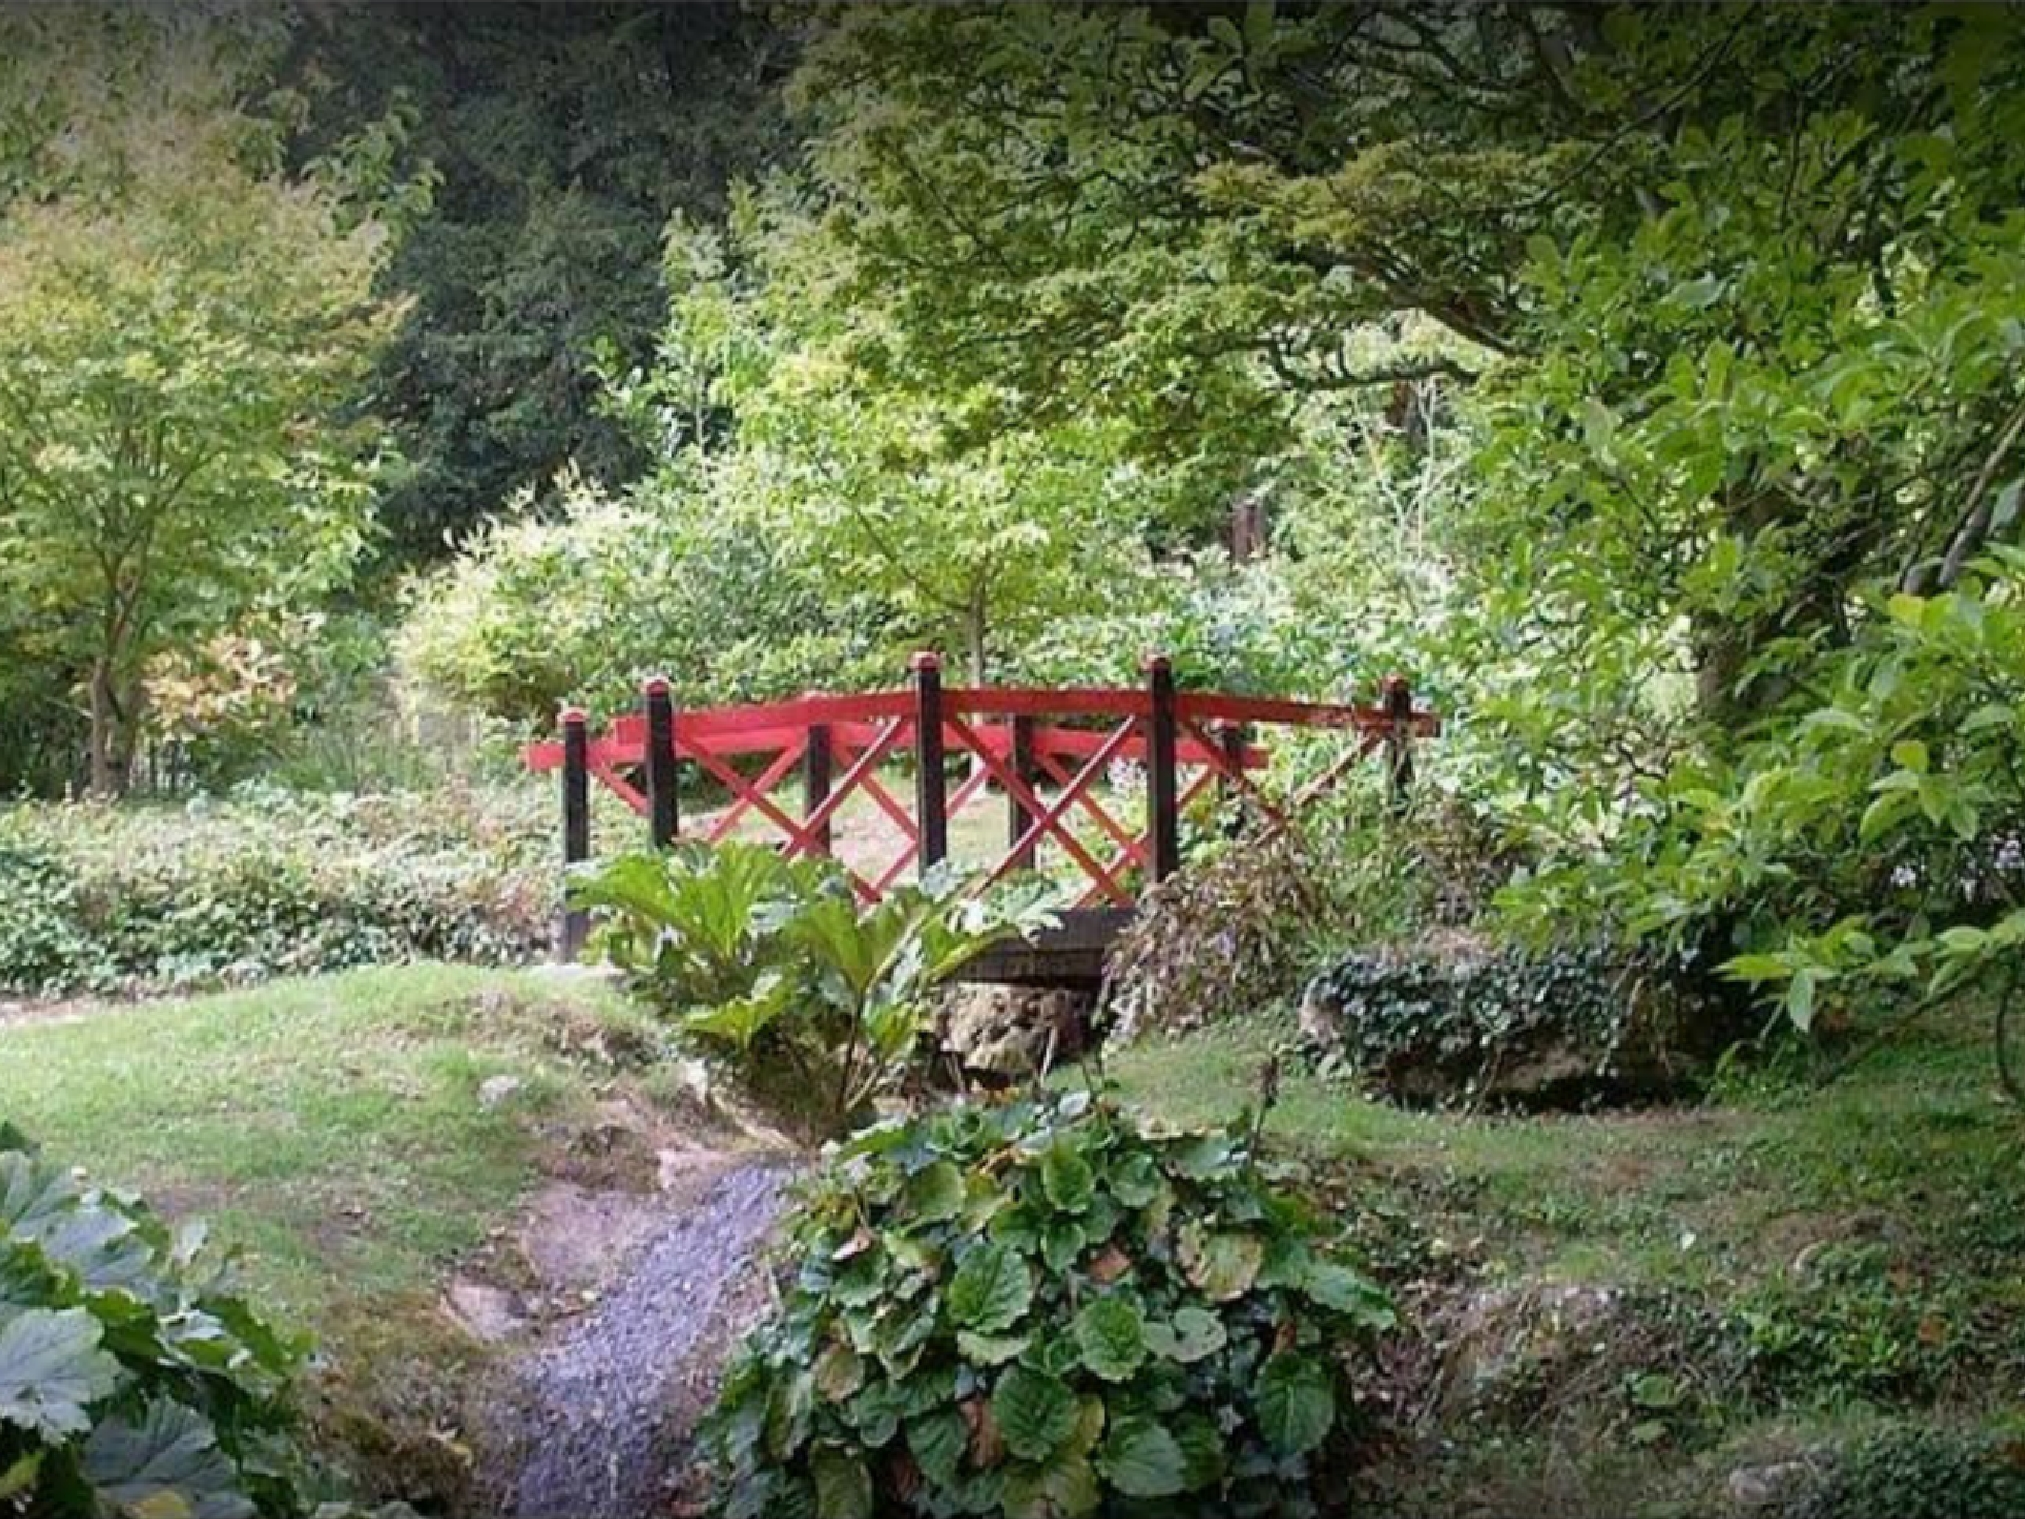 Spring Gardens The 7 Most Beautiful Spring Gardens To Visit In The Uk  Mom With Five